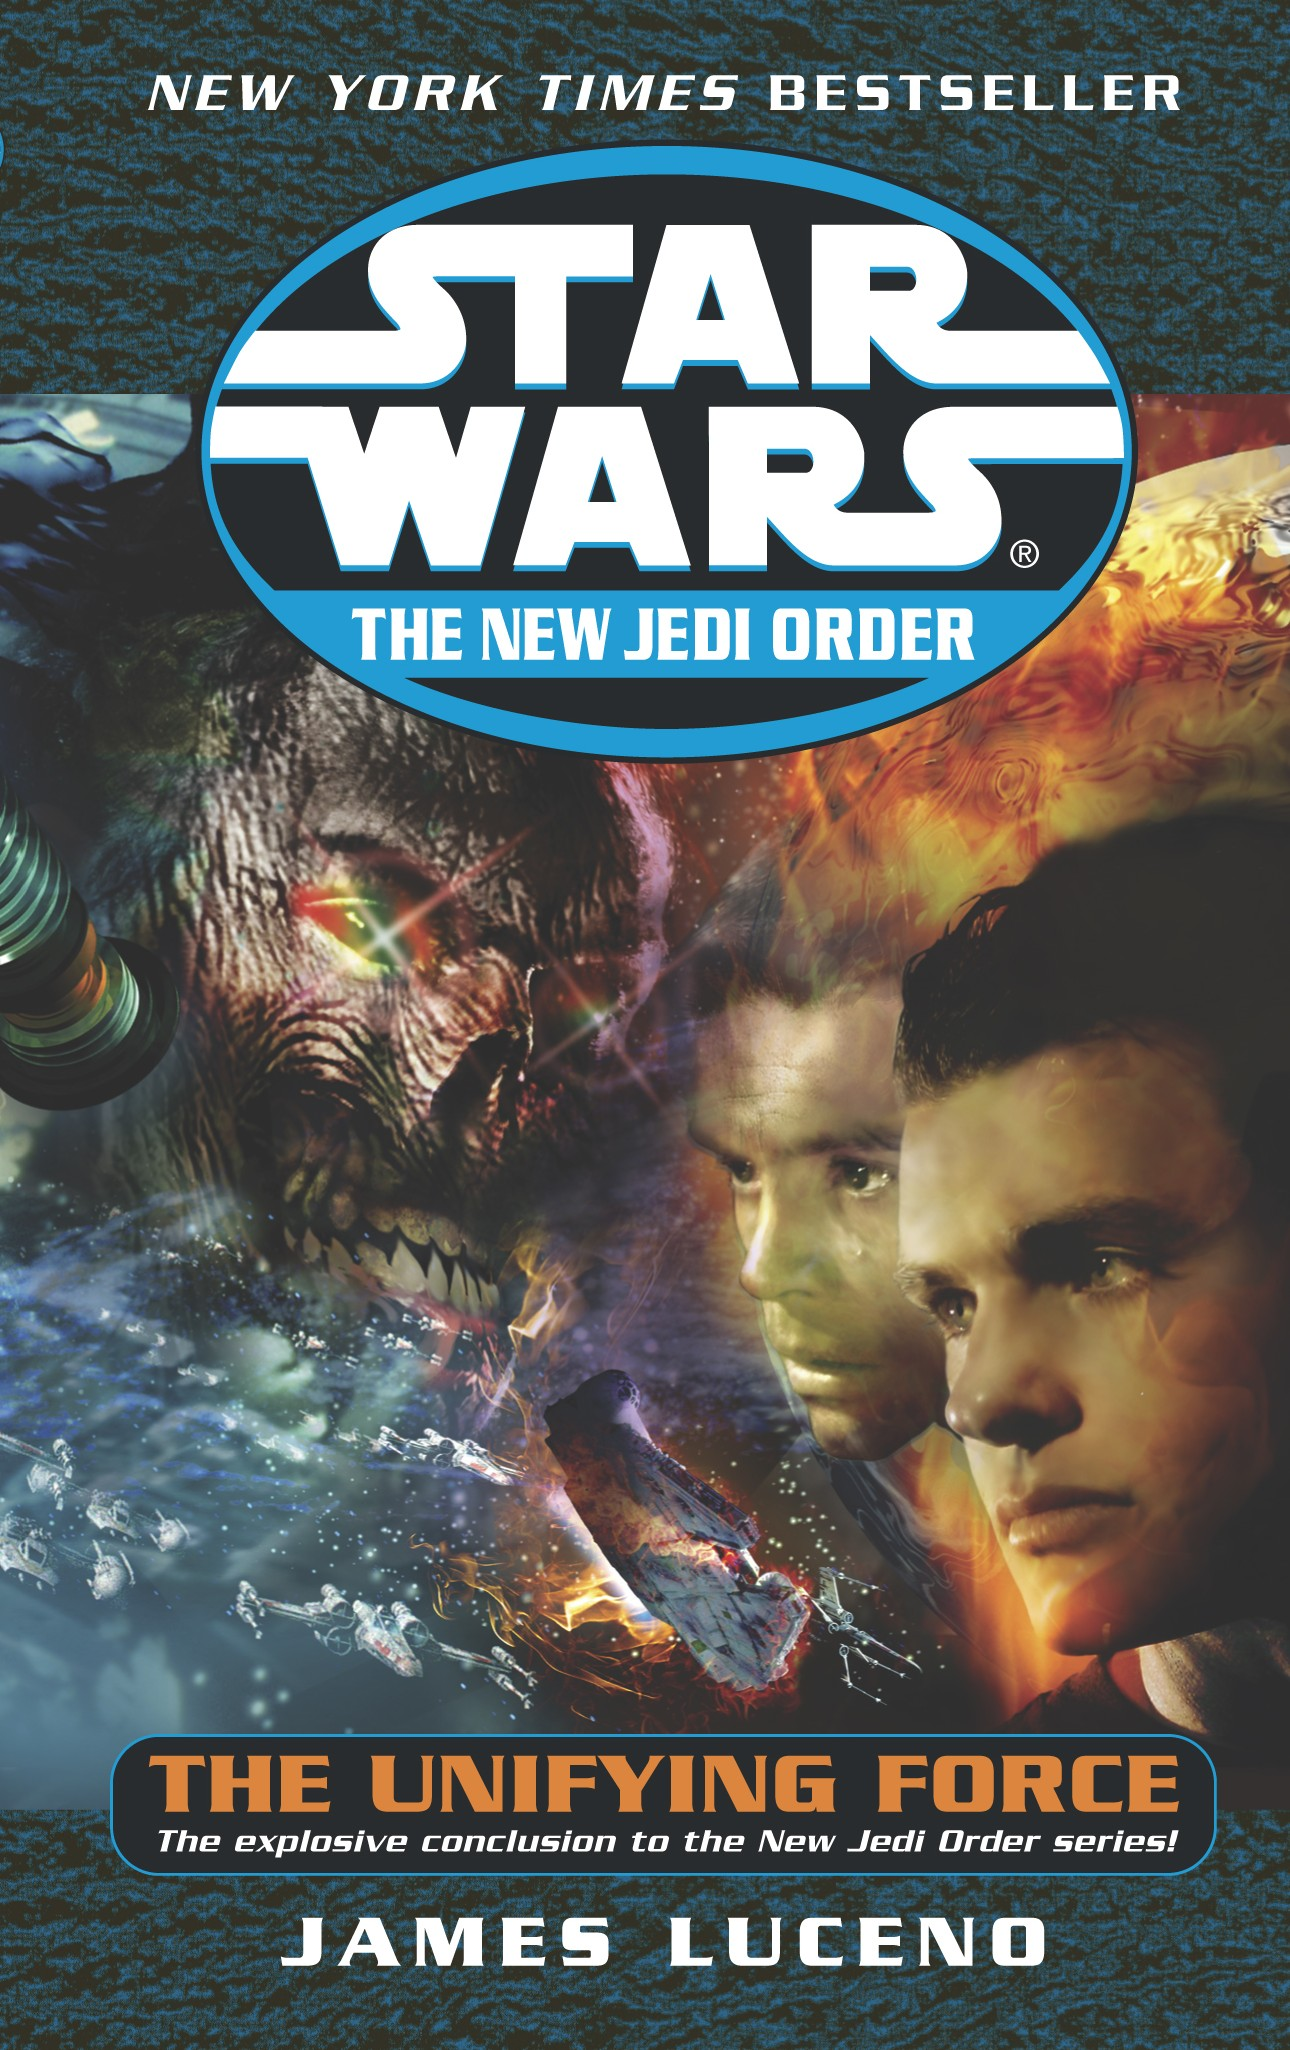 Star Wars The New Jedi Order: The Unifying Force (paperback)